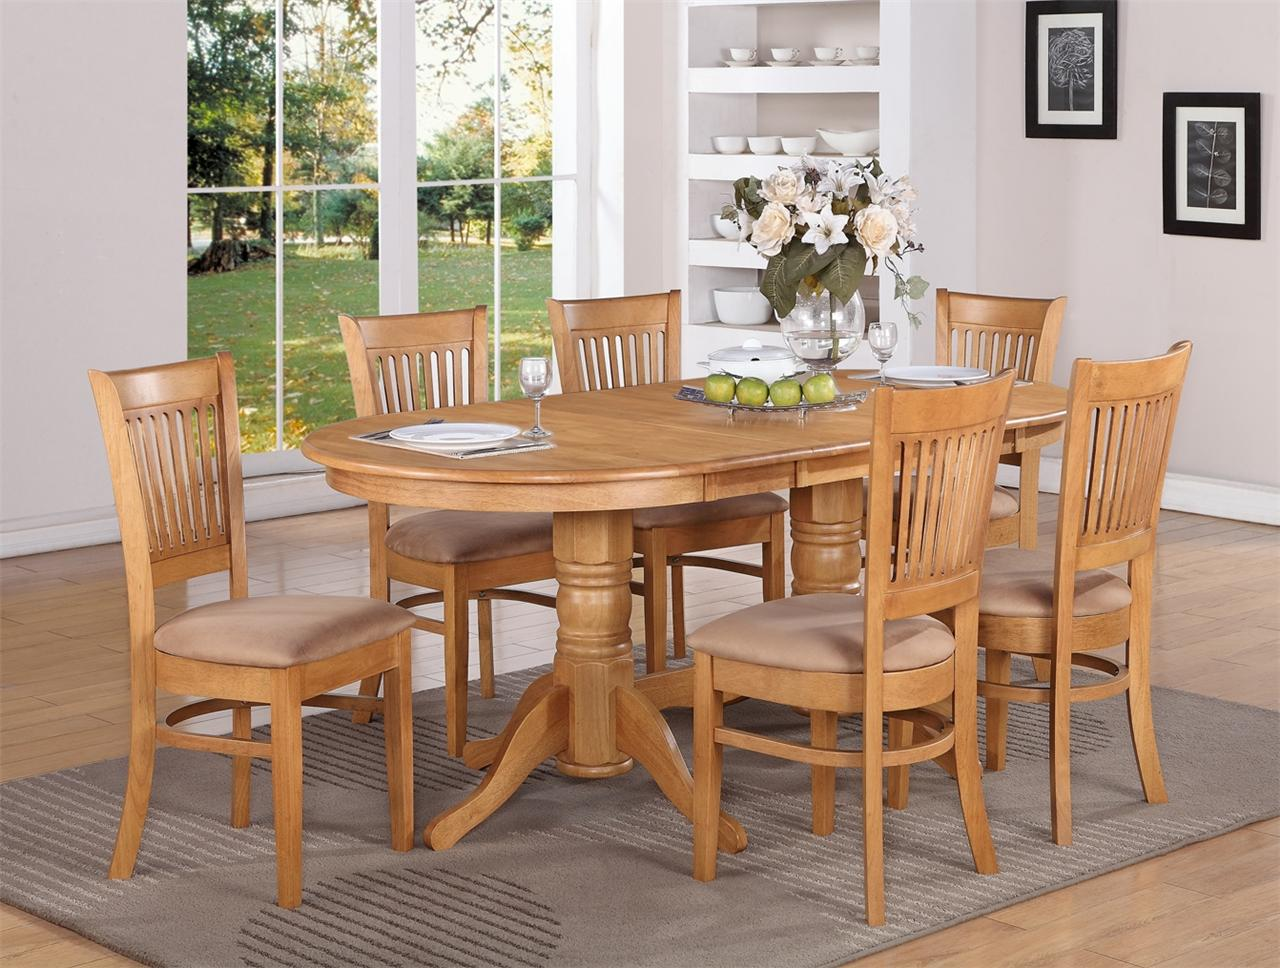 7 Pc Vancouver Oval Dinette Kitchen Dining Table W 6